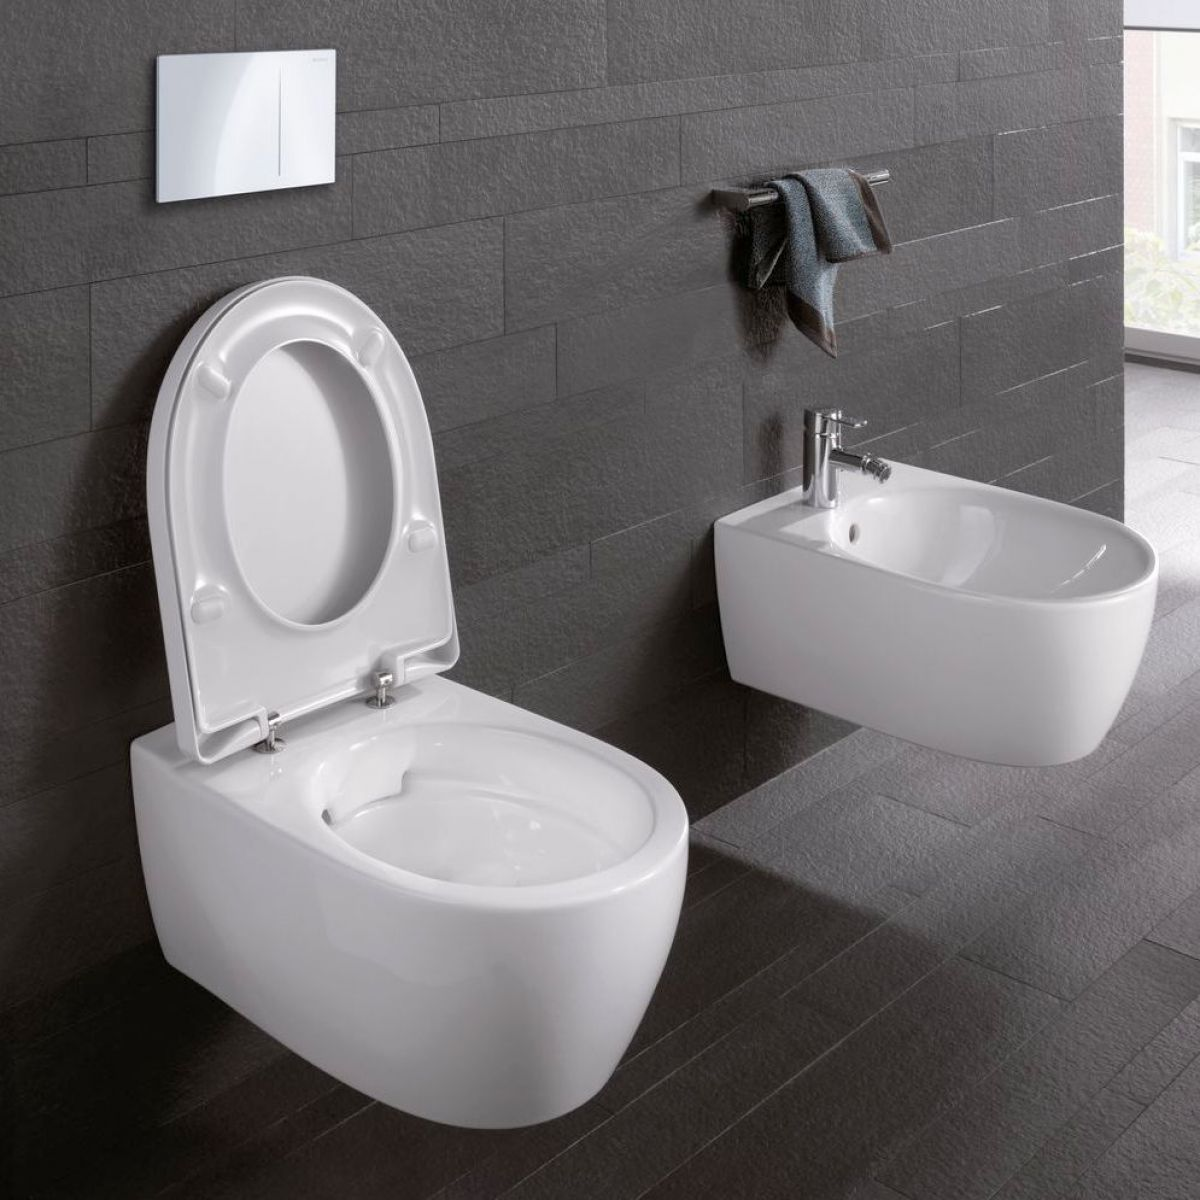 geberit icon wall mounted toilet rimfree bathrooms. Black Bedroom Furniture Sets. Home Design Ideas